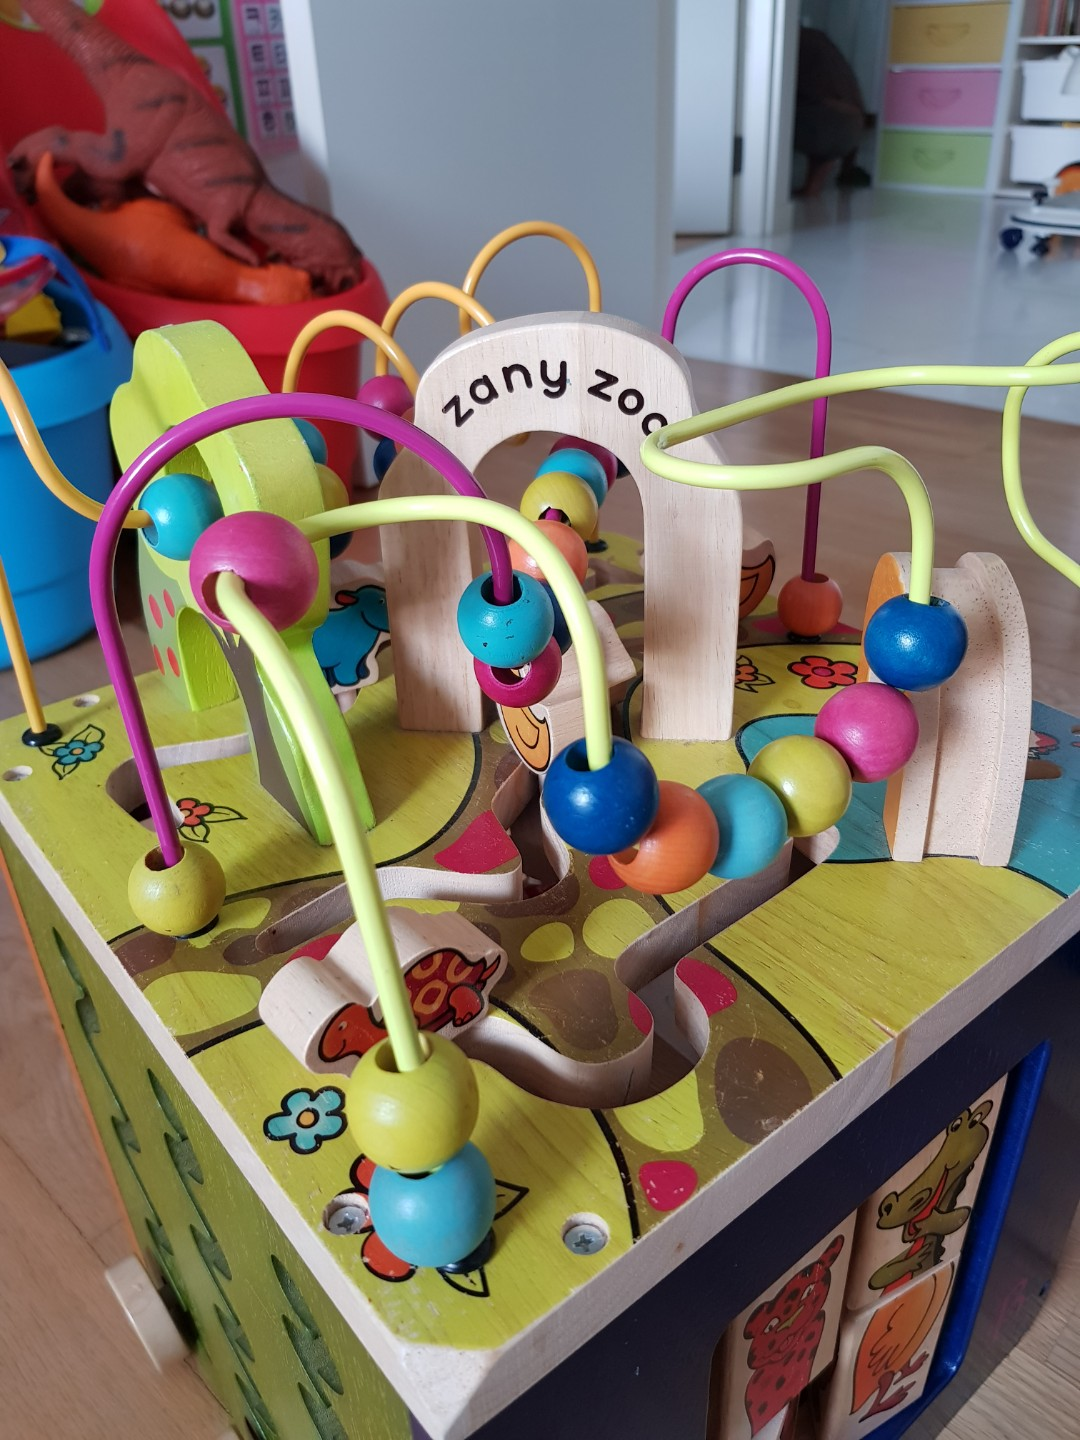 zany zoo wooden active cube, babies & kids, toys & walkers